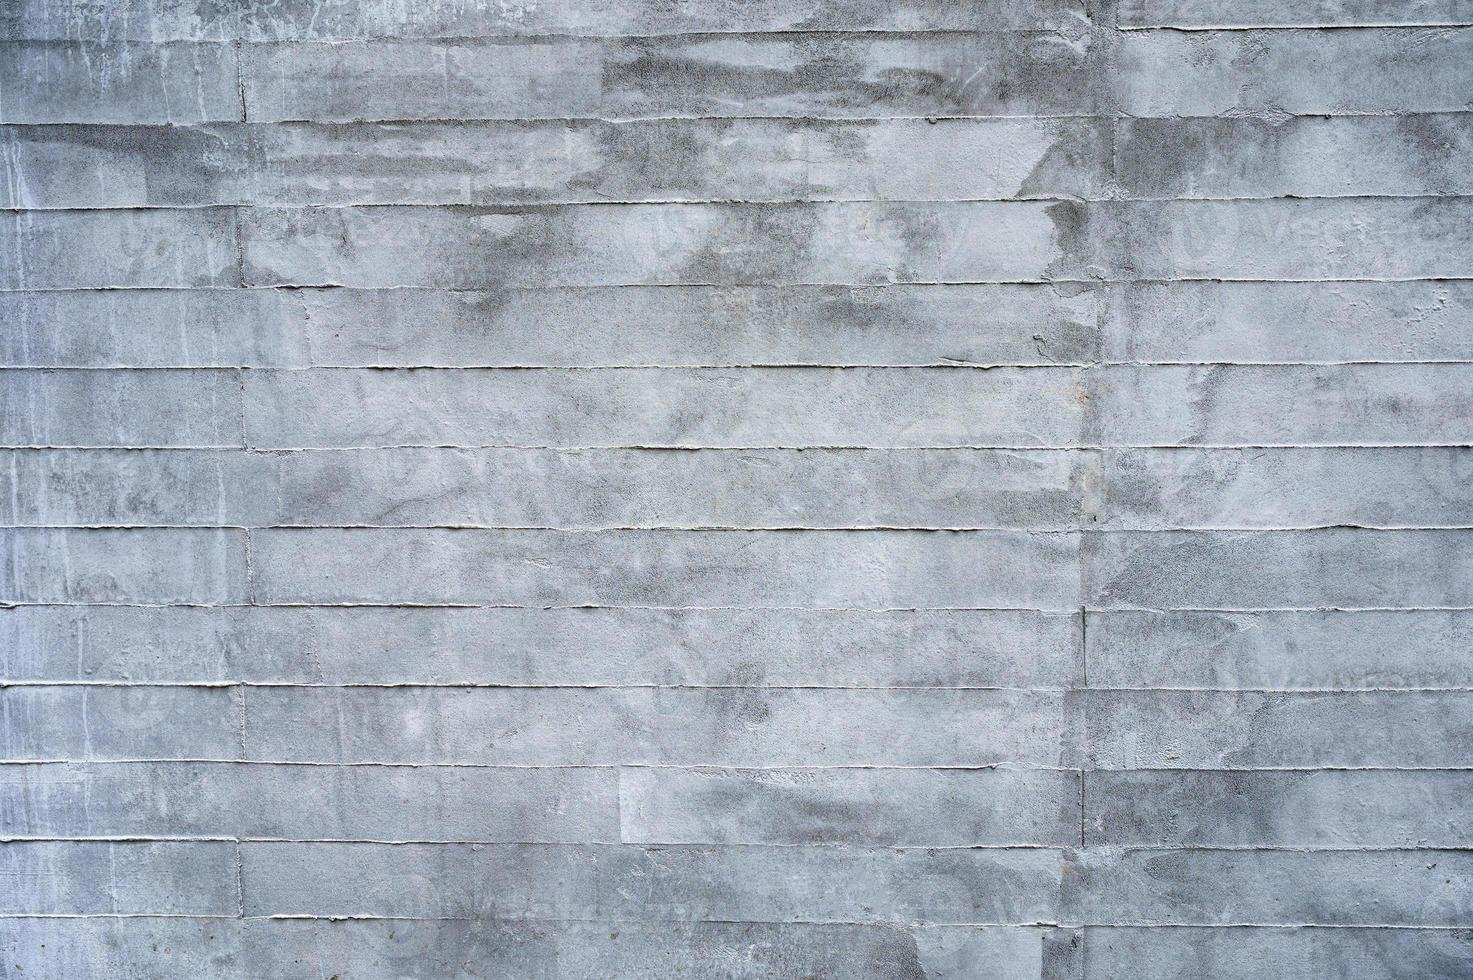 Texture of grey stained cement brick block wall photo